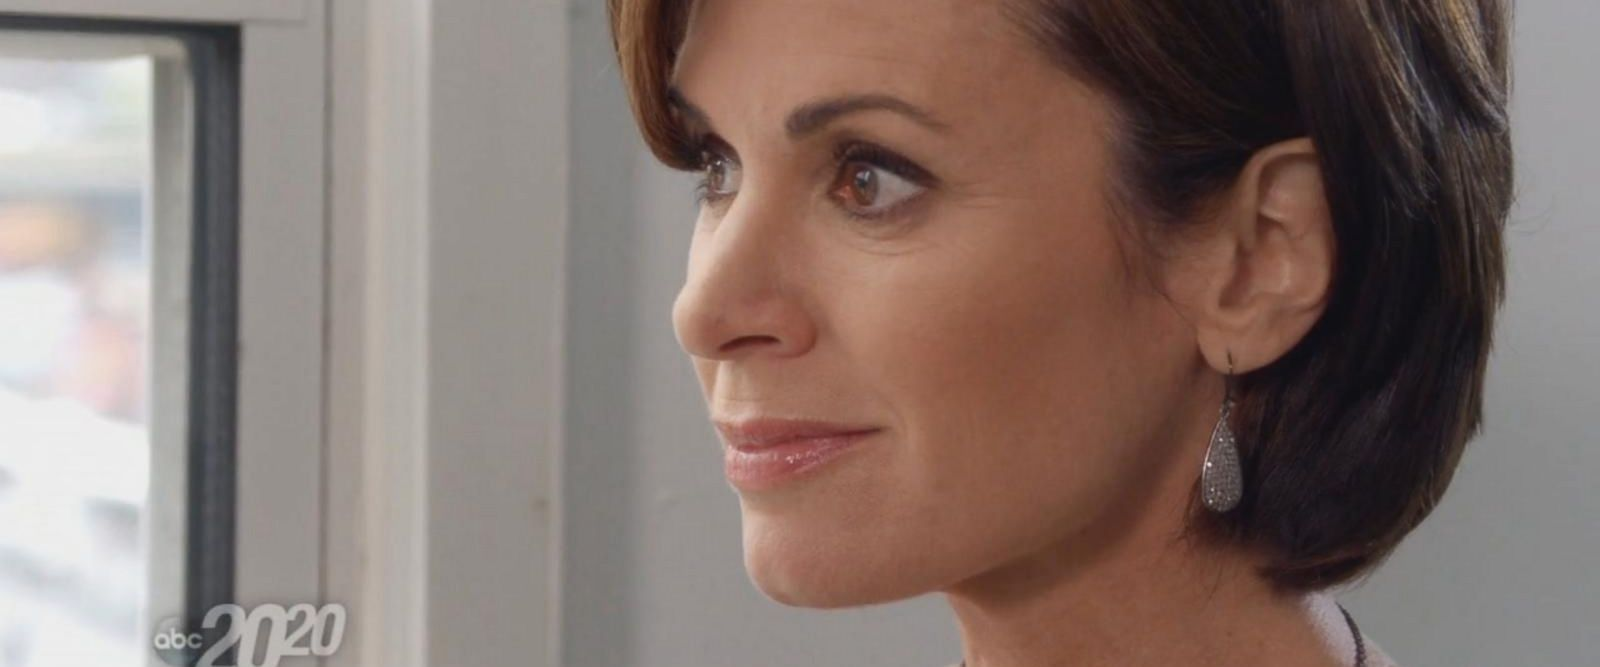 VIDEO: '20/20' says farewell to Elizabeth Vargas